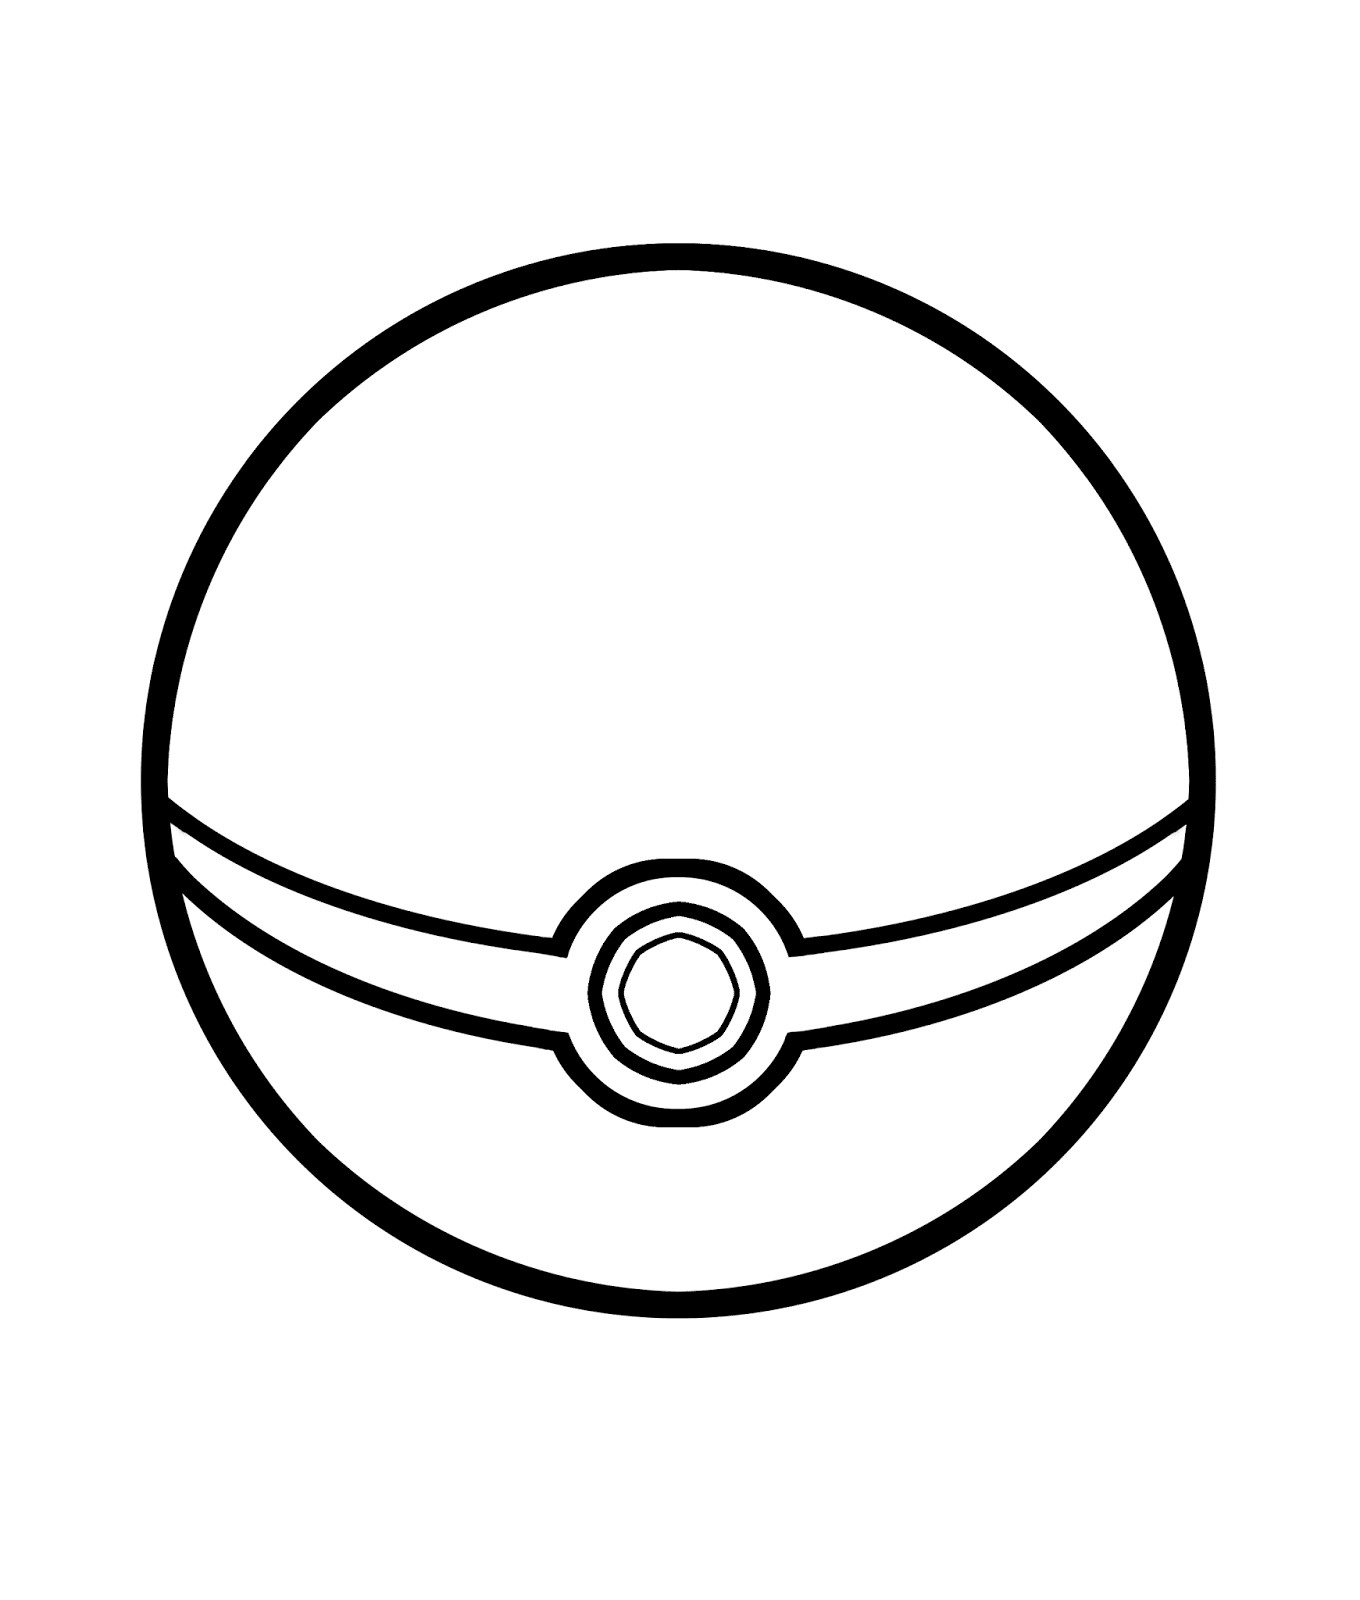 Coloriage De Pokémon à Imprimer New Dessins Et Coloriages Page De Coloriage Grand format   Of Coloriage De Pokémon à Imprimer